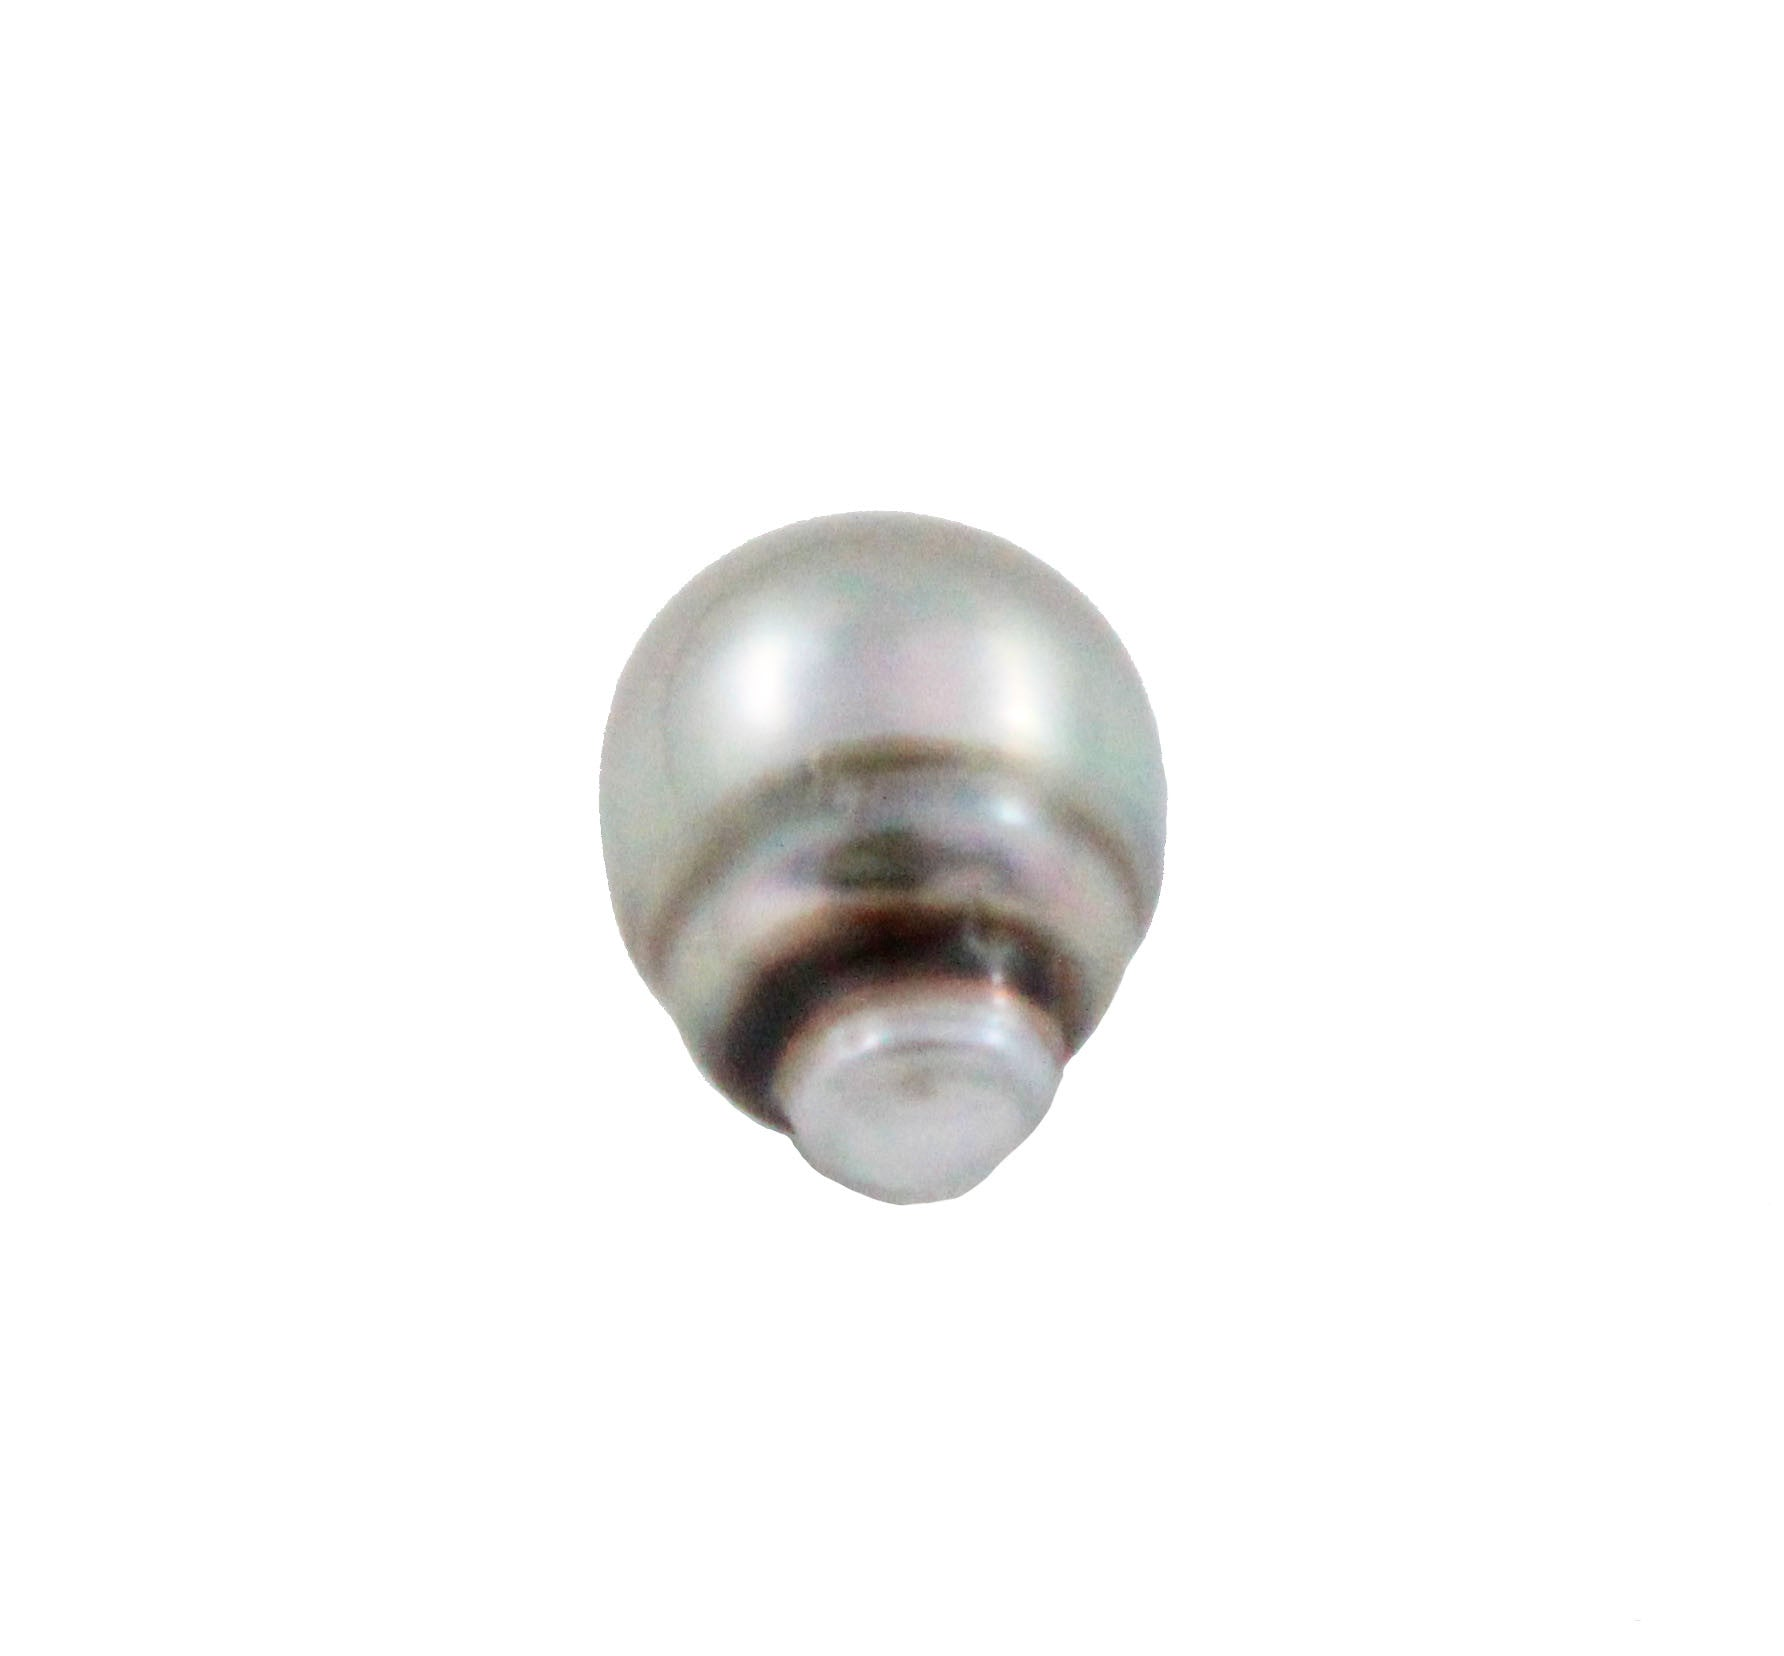 Tahitian pearl undrilled 0.97gr mm 11.15x8.26mm - Purchase only with custom order - Sarah Hughes - 5